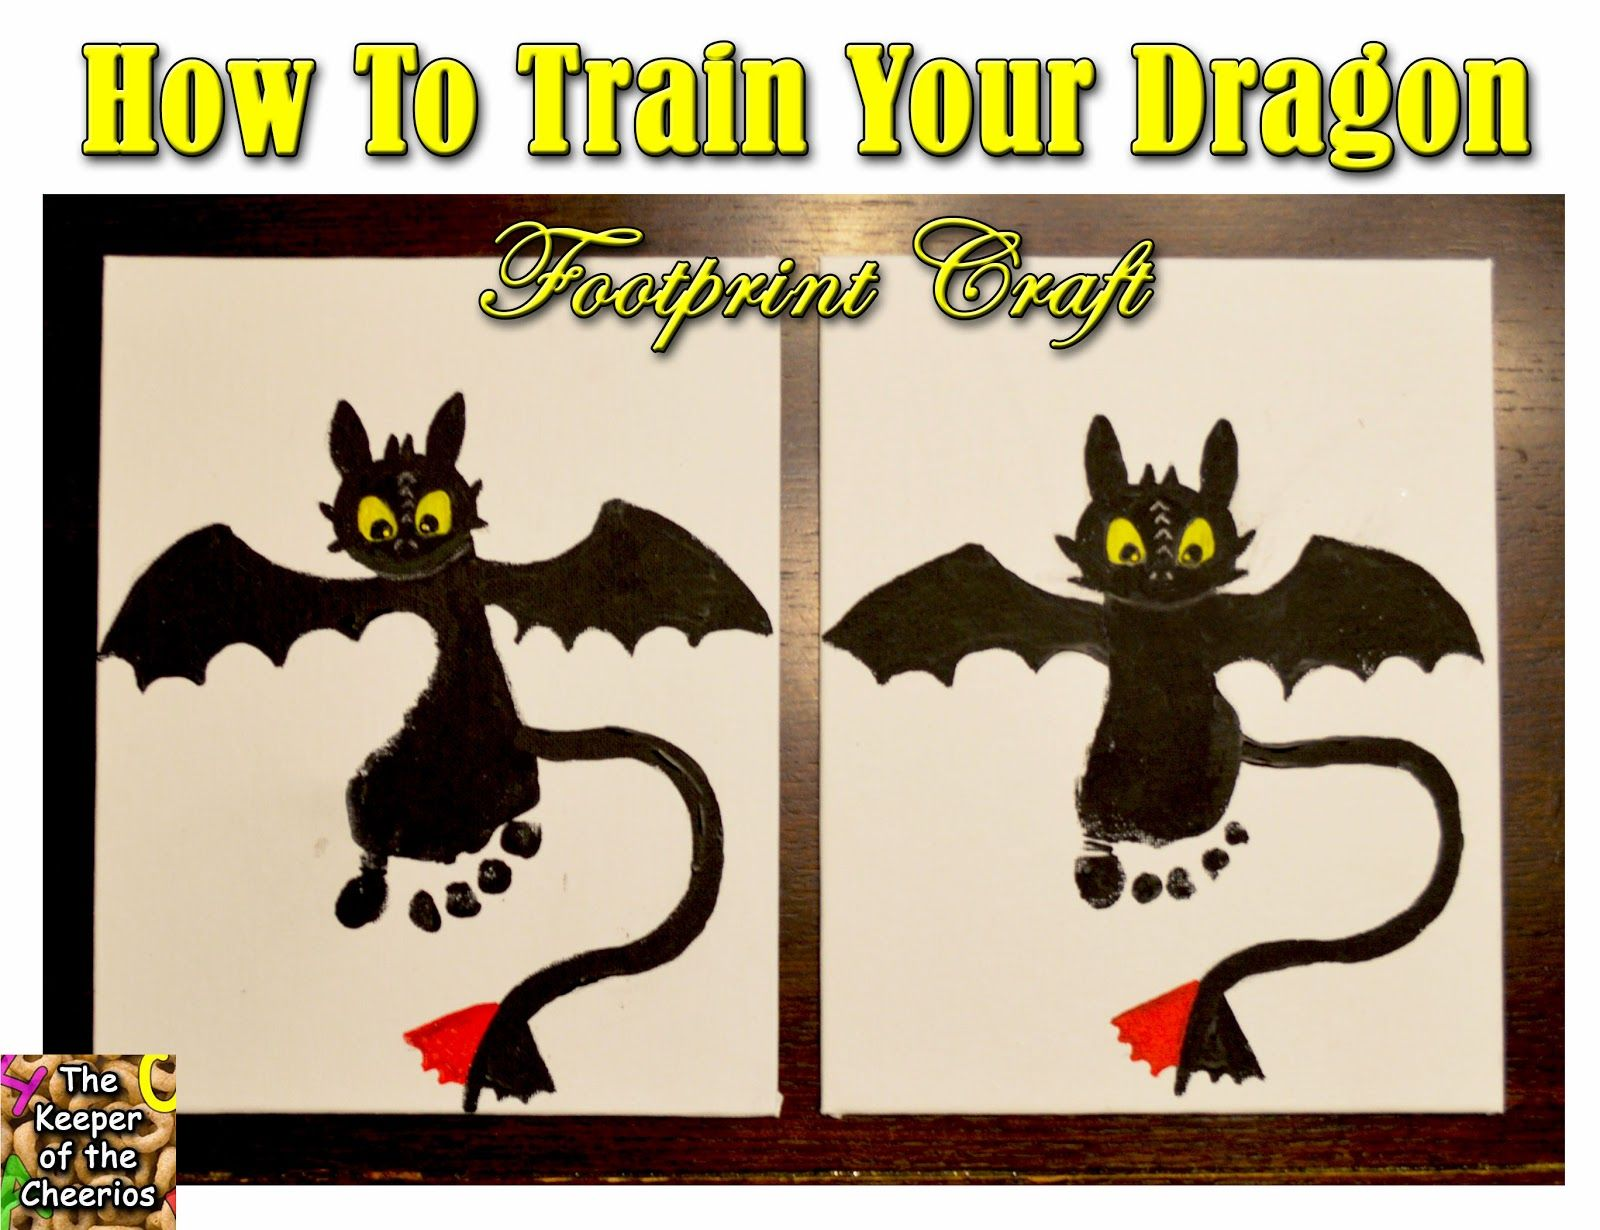 The Keeper of the Cheerios: How to Train Your Dragon Footprint Craft